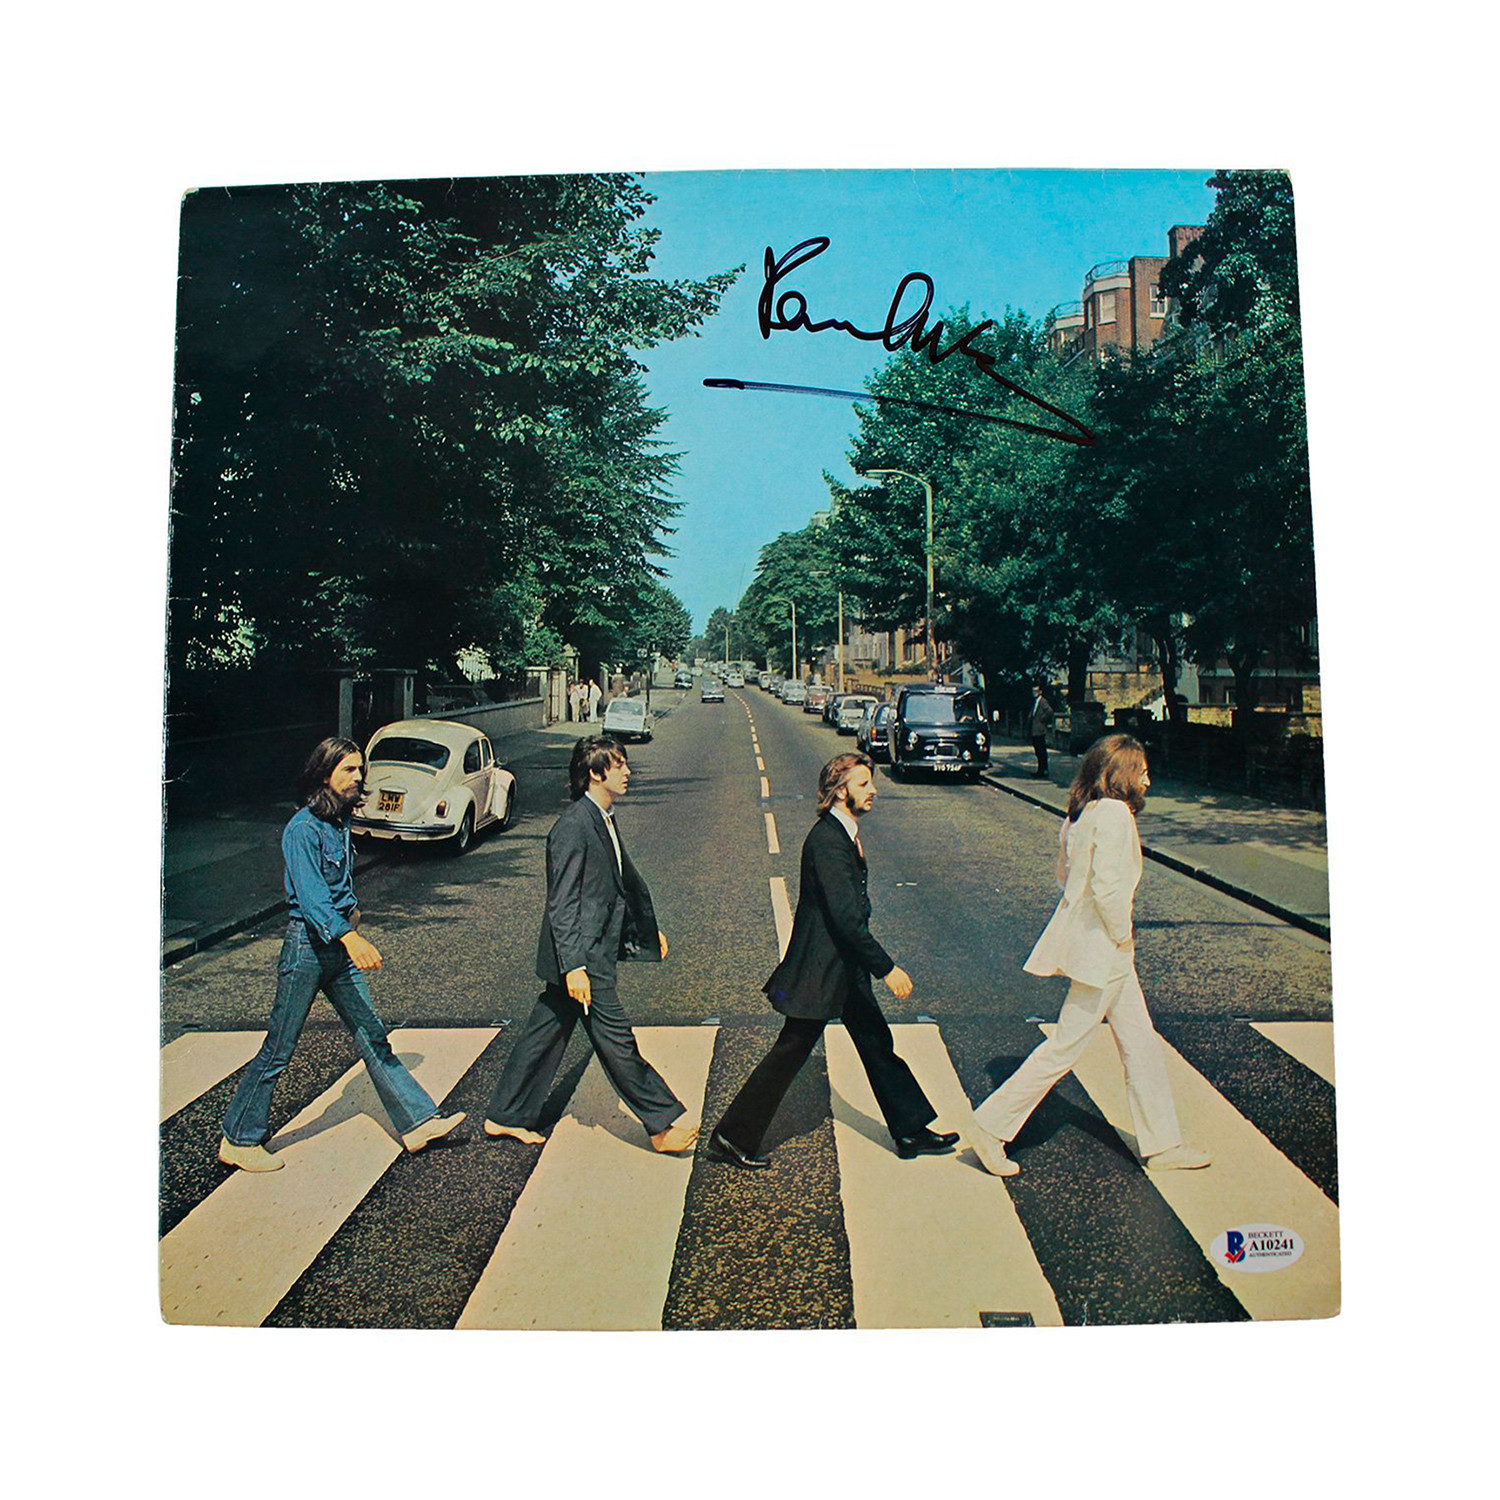 Paul Mccartney Signed The Beatles Quot Abbey Road Quot Record